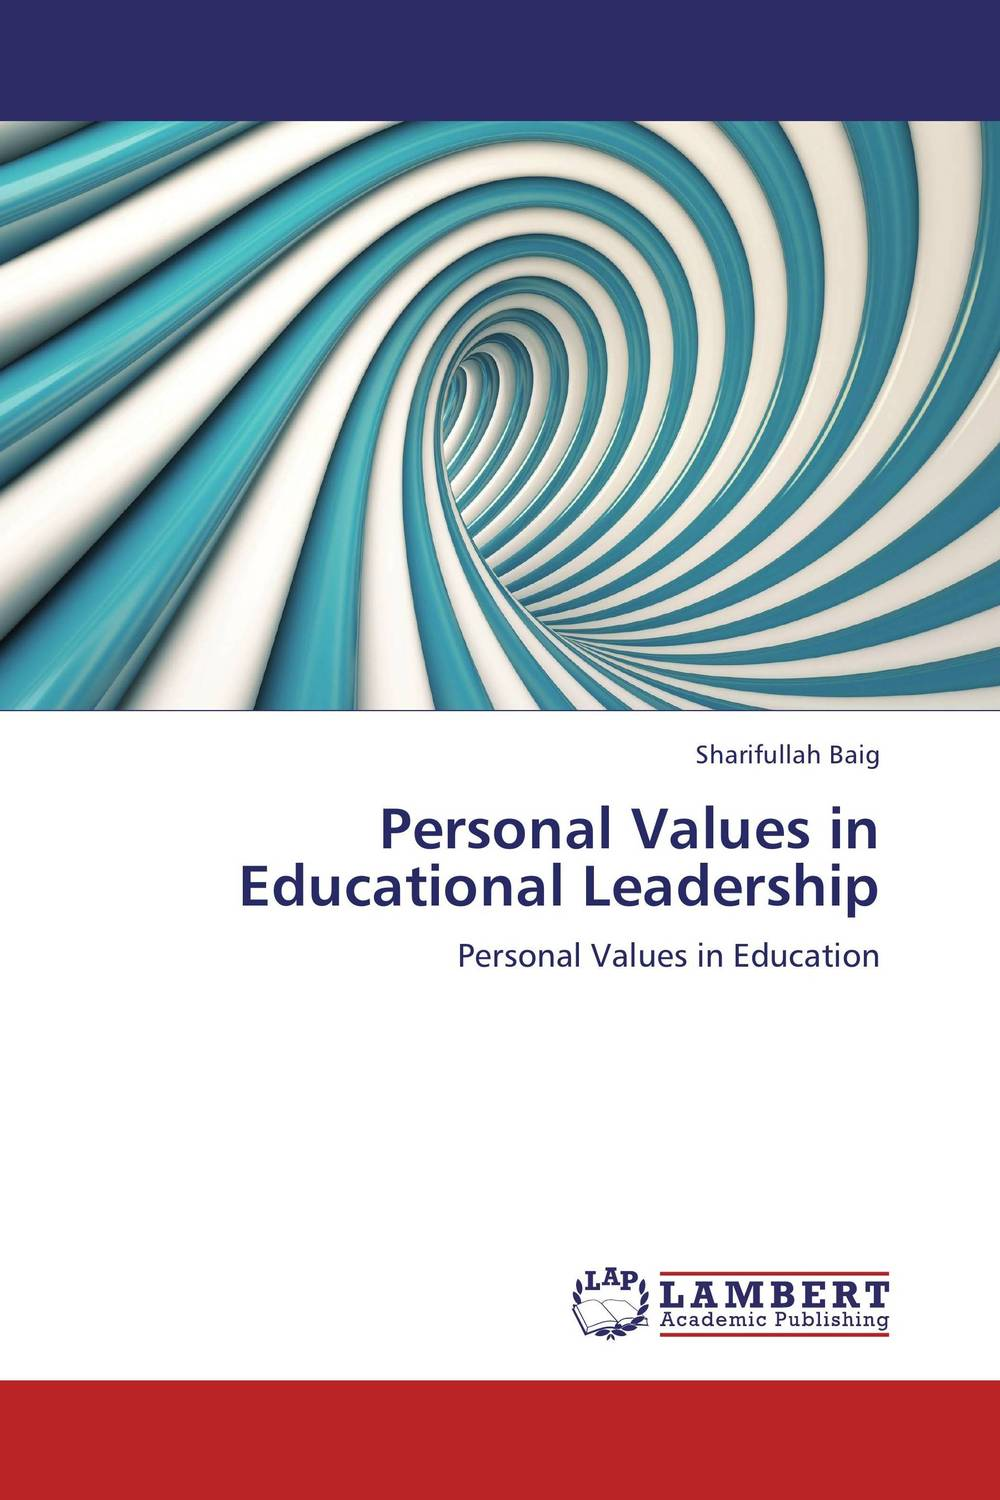 Personal Values in Educational Leadership